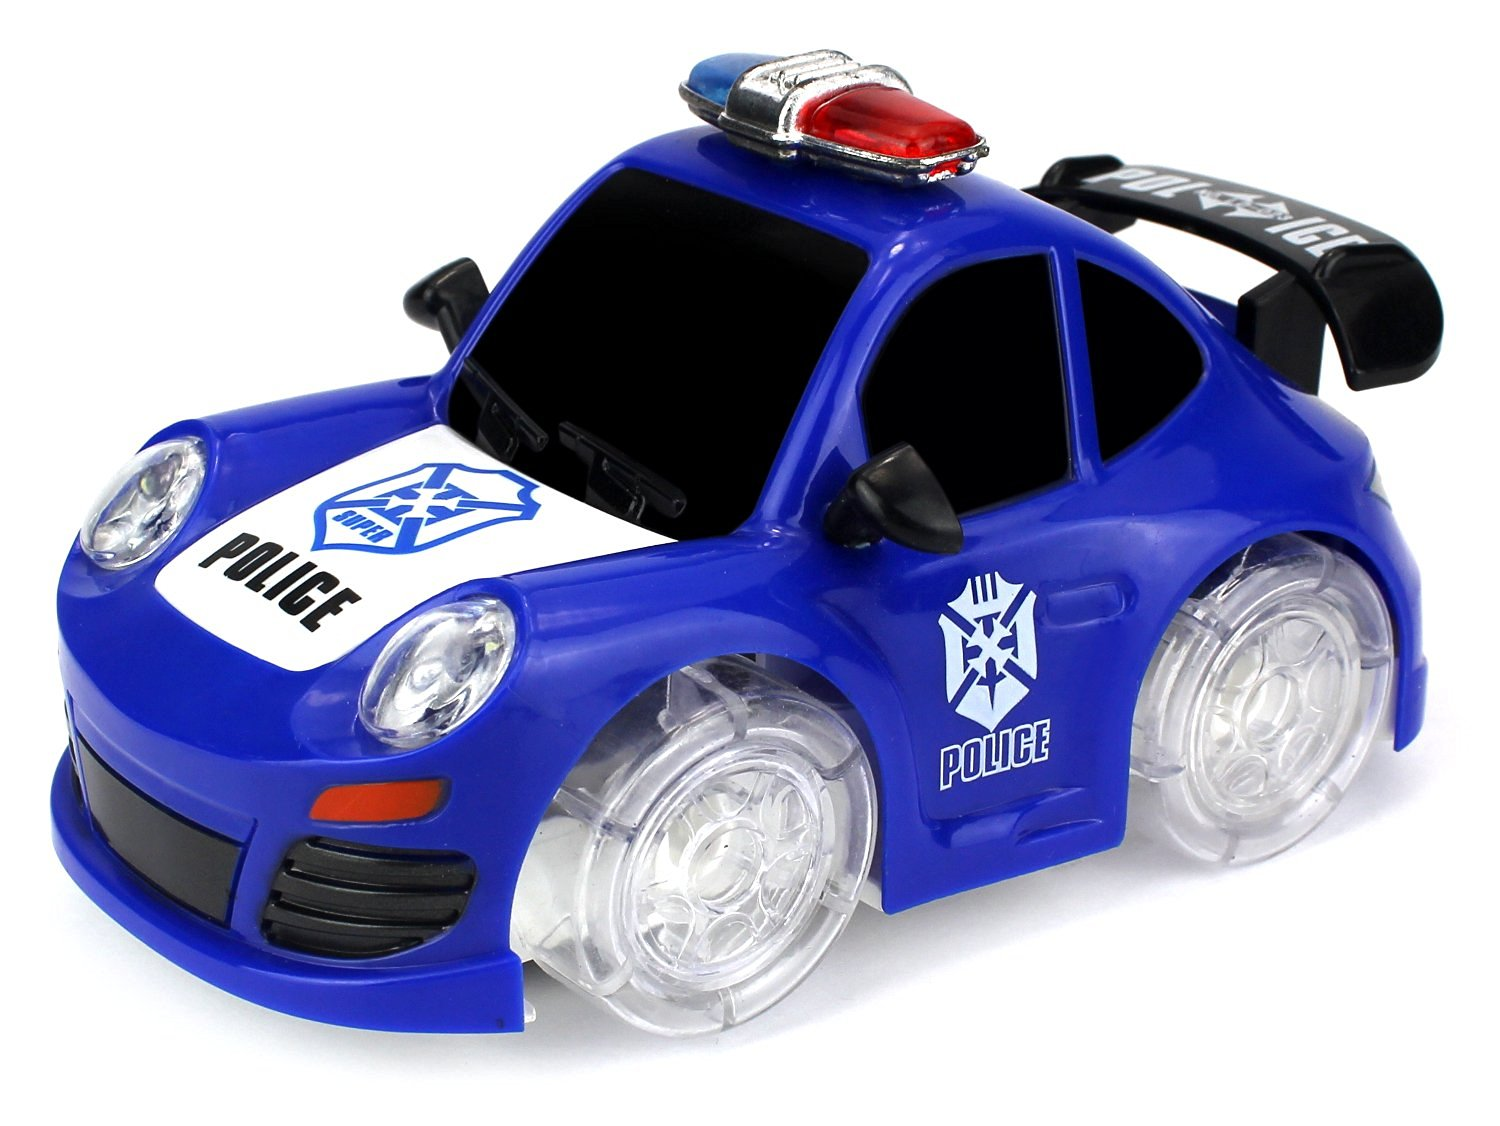 Super Police Coupe Battery Operated Bump and Go Toy Car w  Ultra Bright Head Lights, Sounds (Colors May Vary) by Velocity Toys